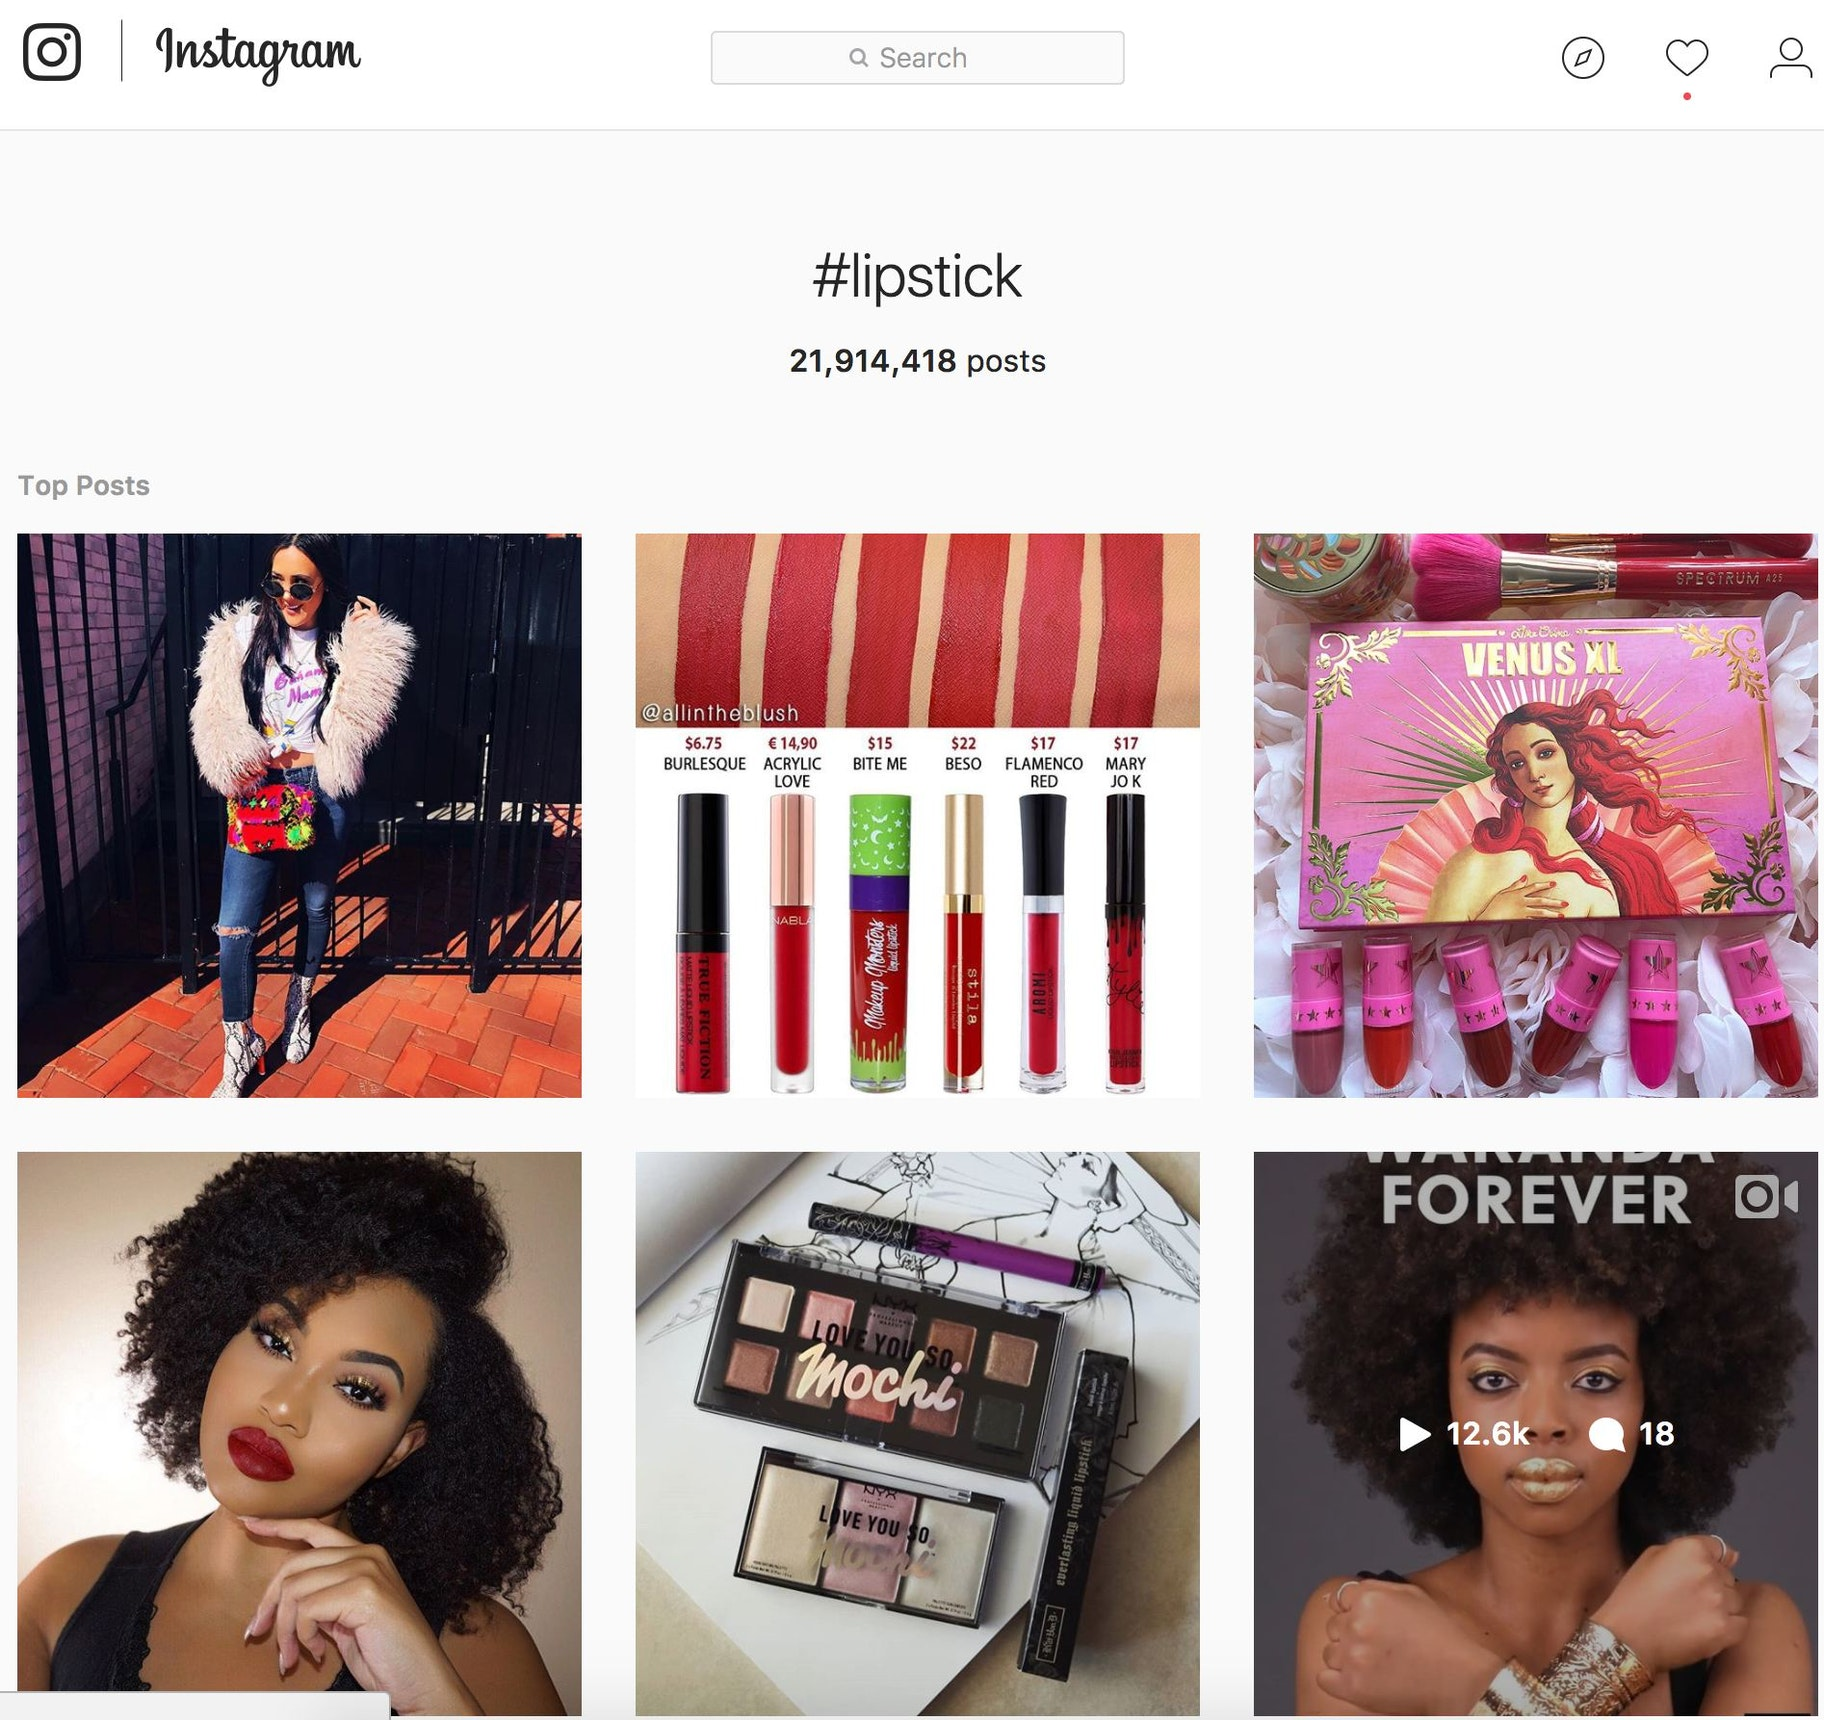 Instagram viral marketing examples